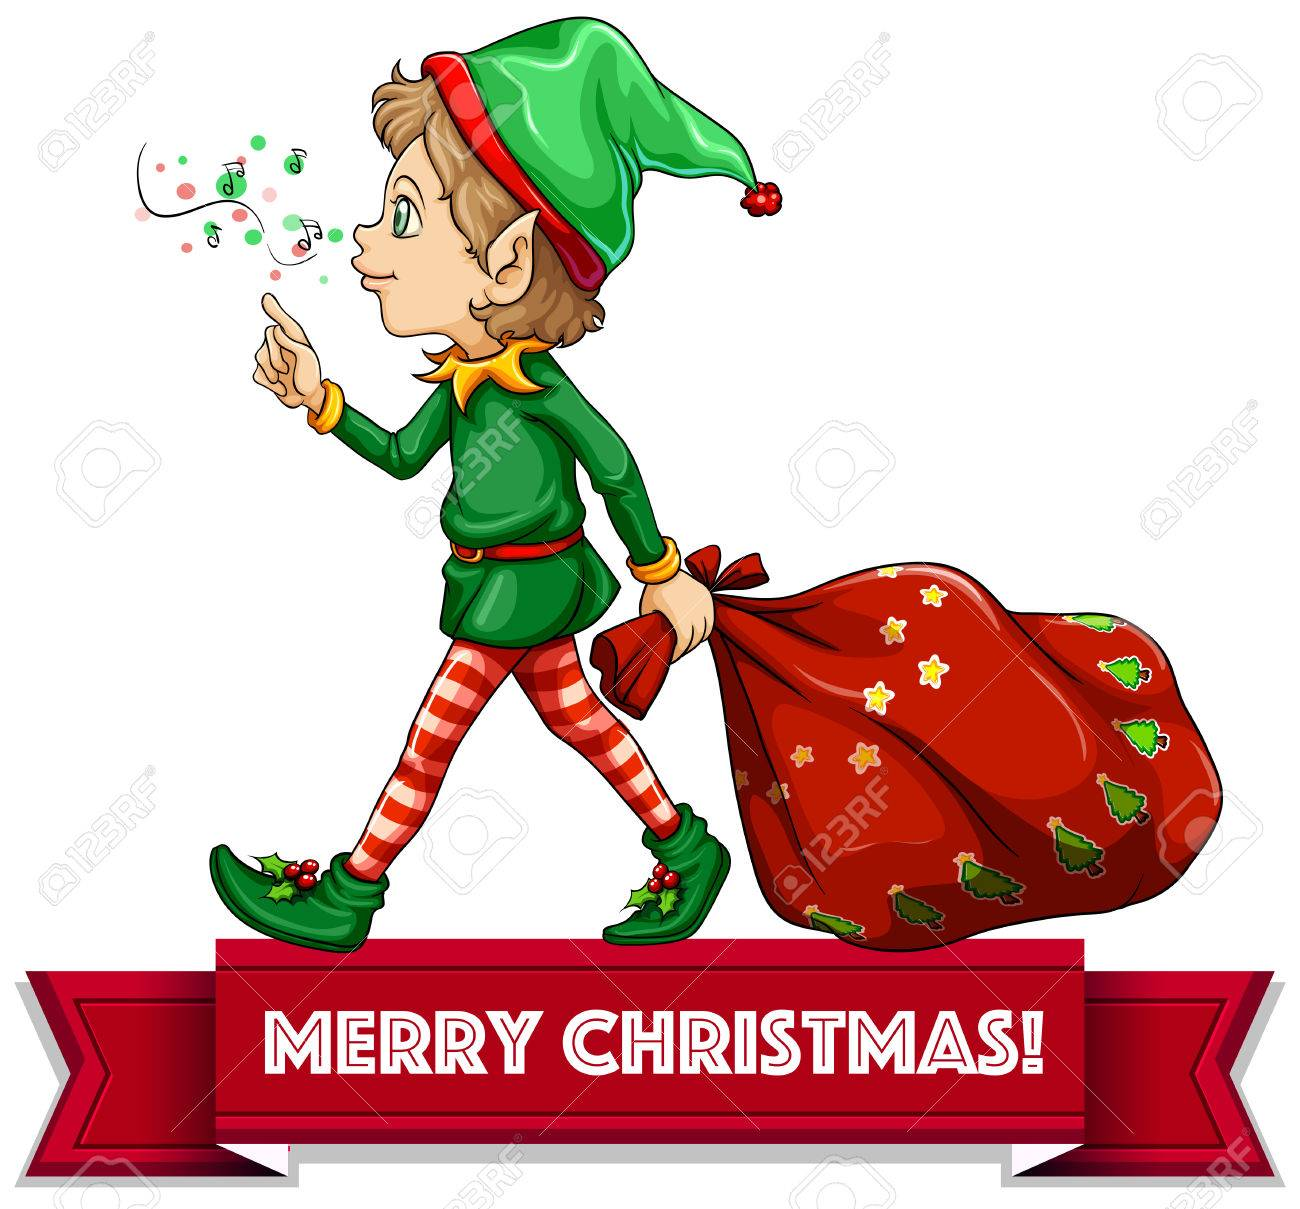 Merry Christmas With Elf And Sack Of Toys Royalty Free Cliparts ...